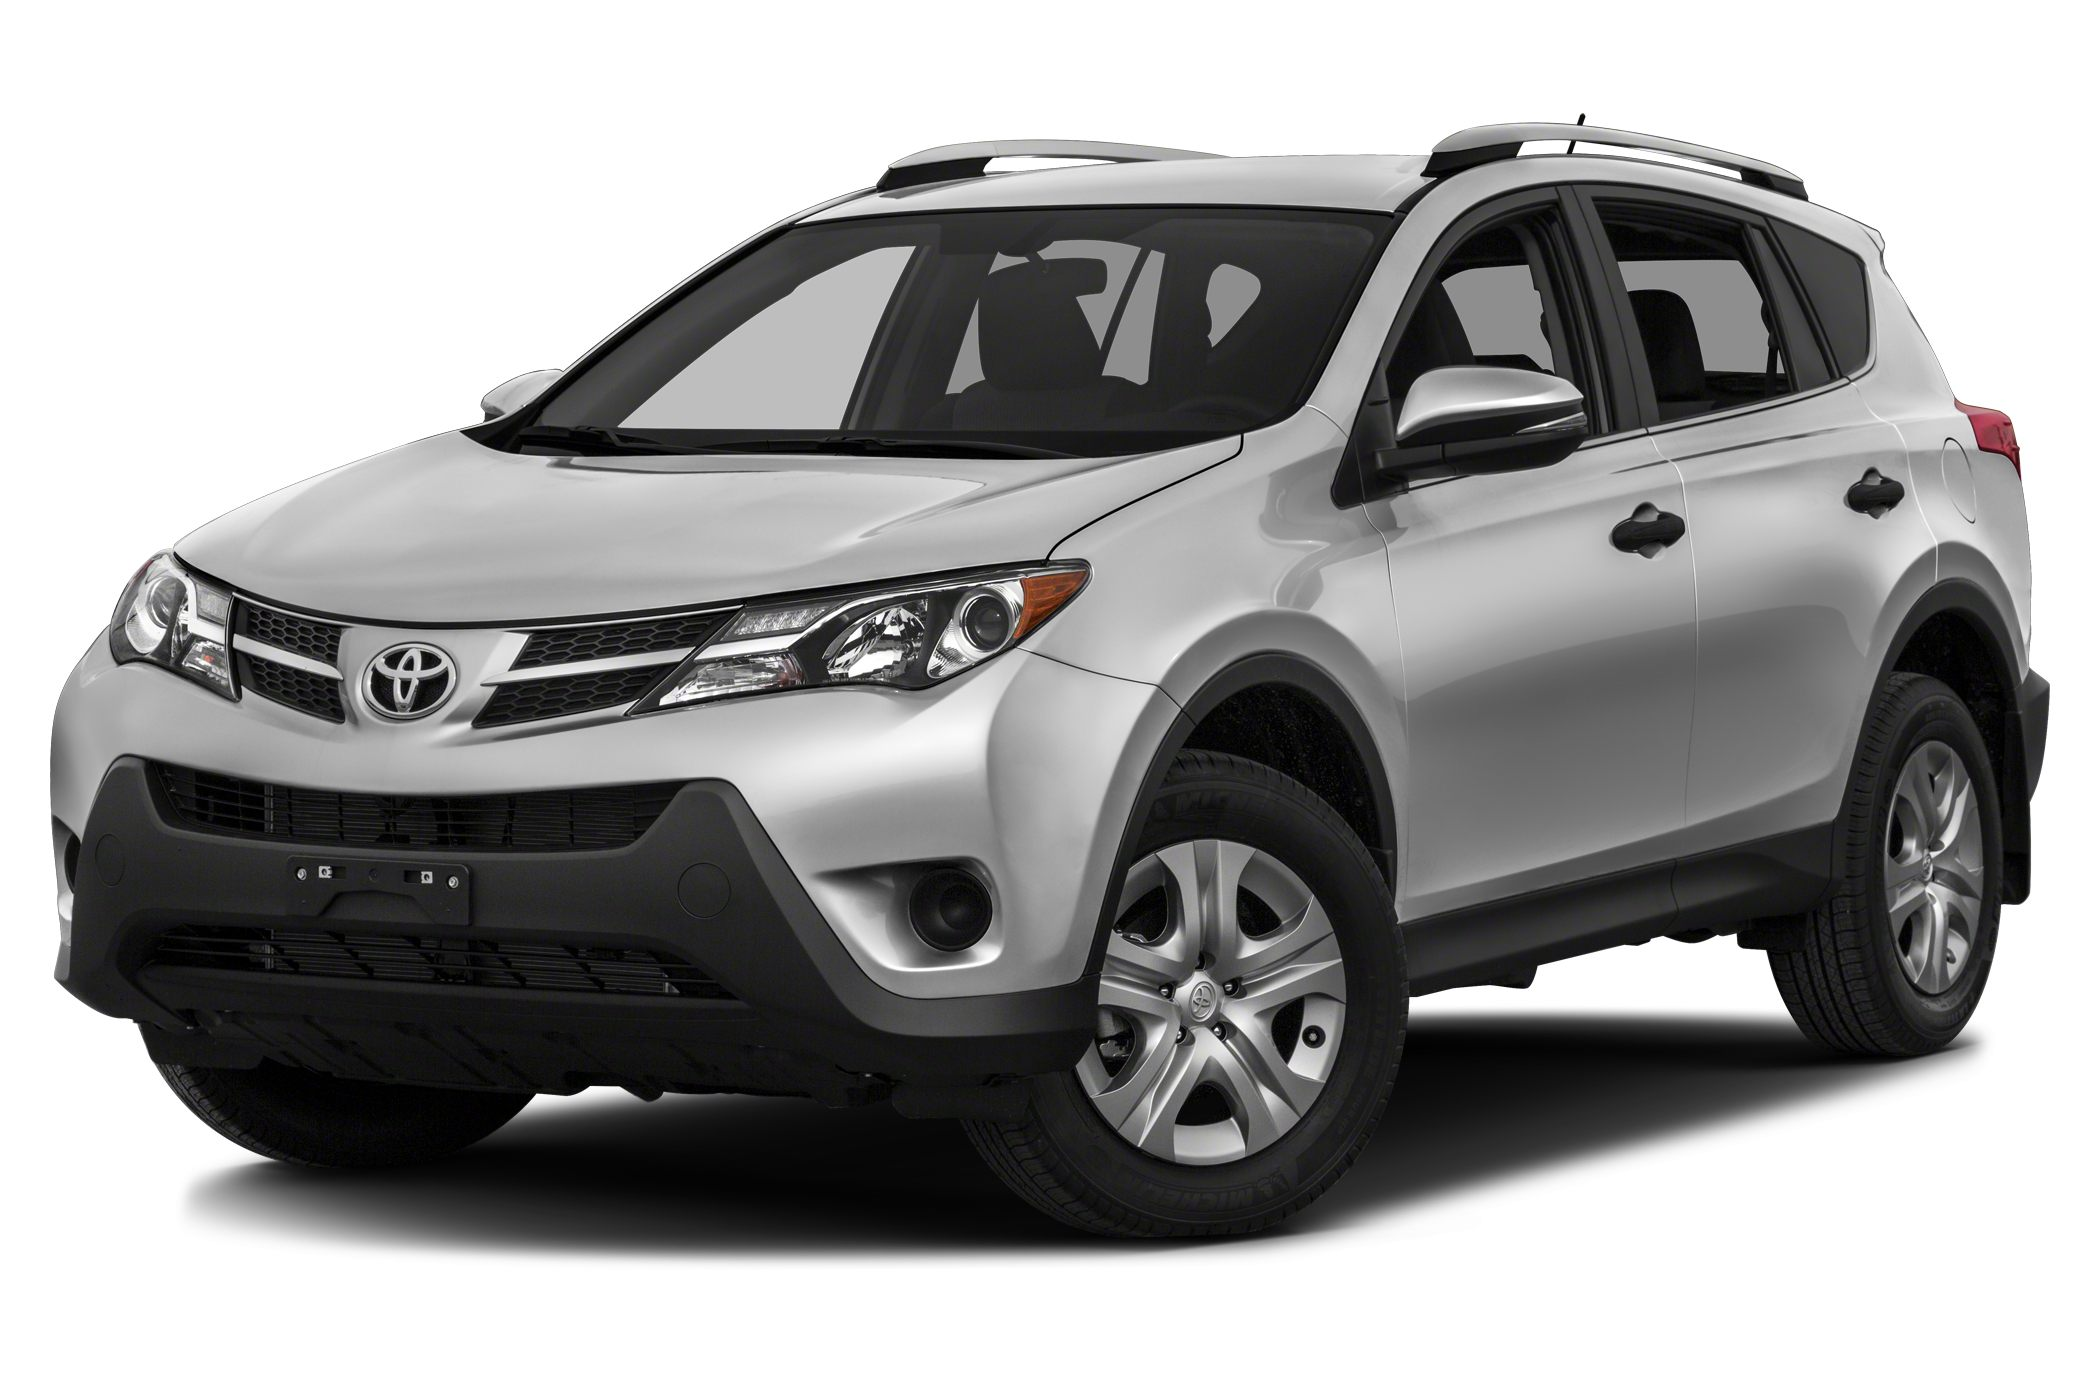 2014 Toyota RAV4 LE Toyota FEVER No games just business If youre looking for an used vehicle i